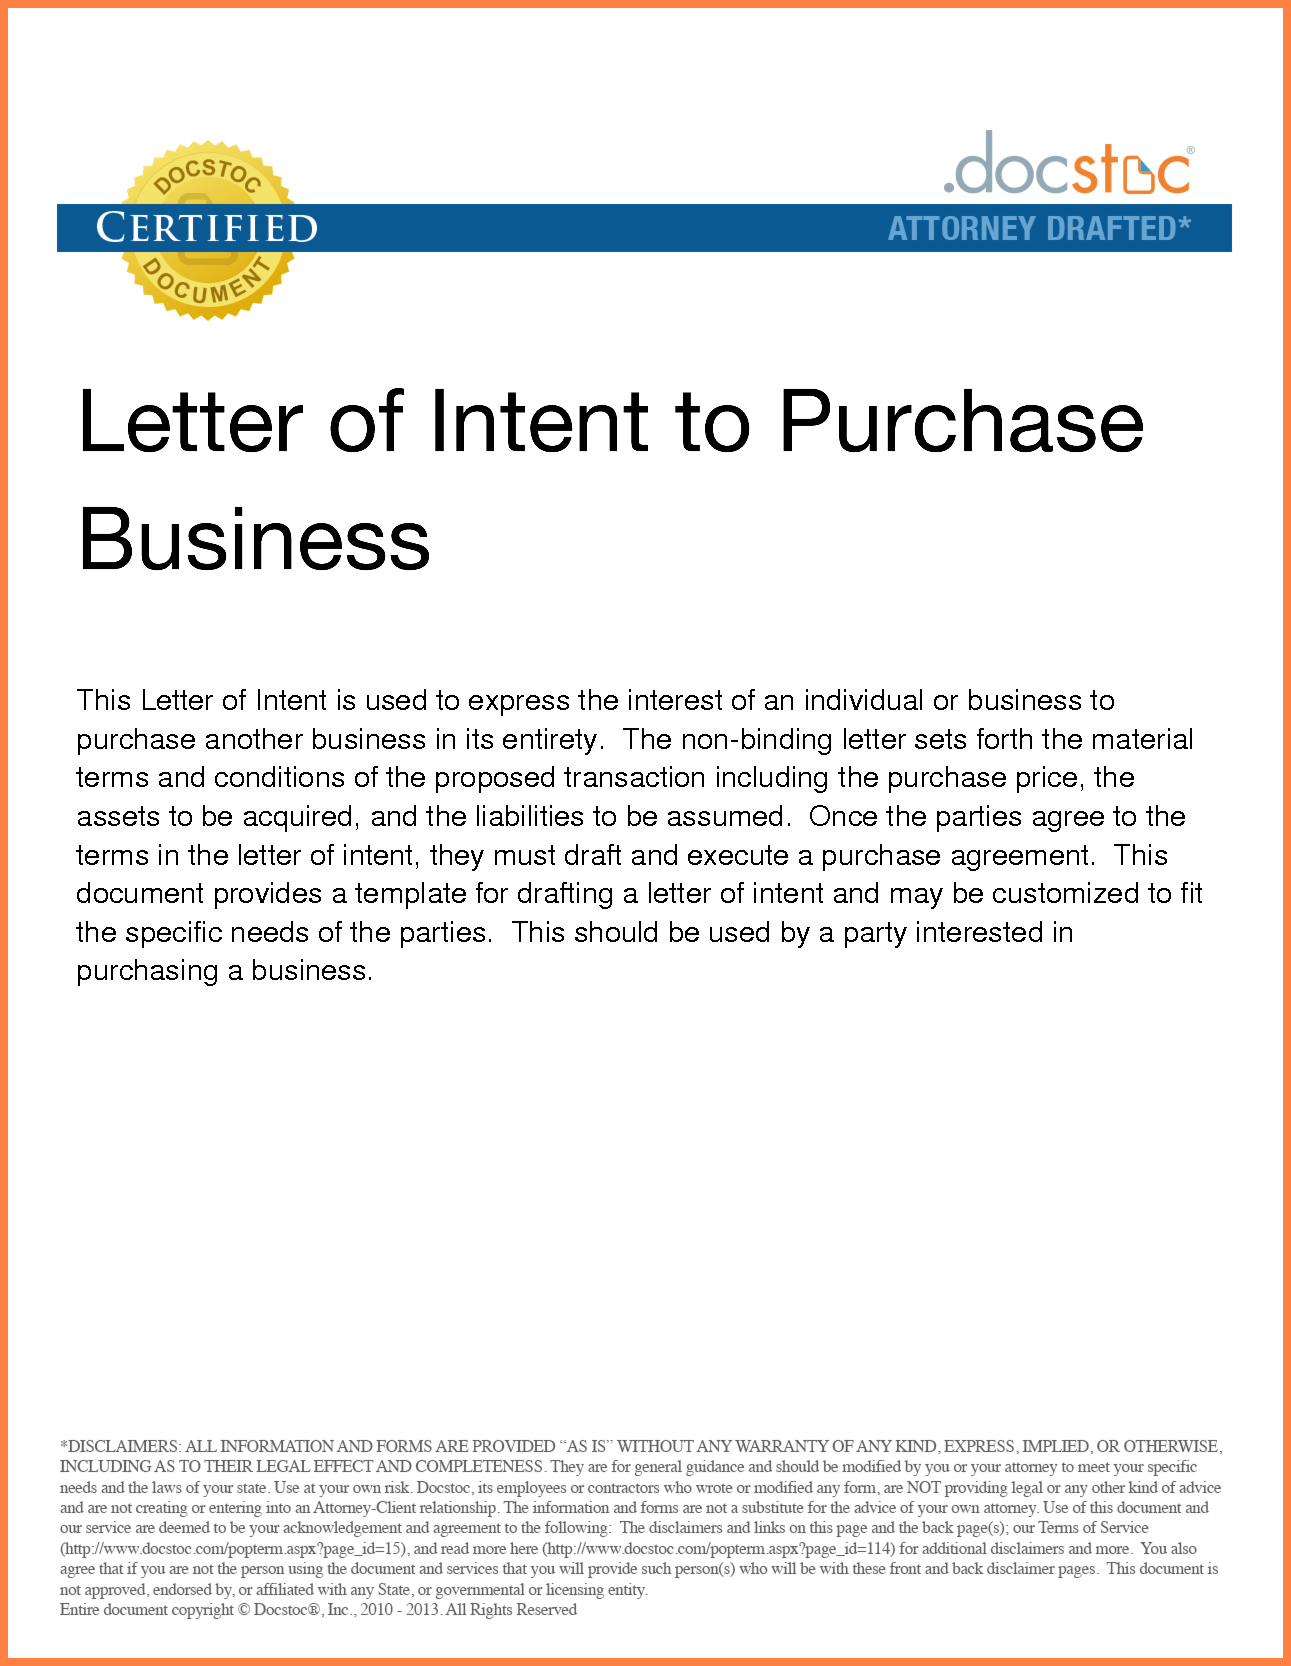 Letter Of Intent to Purchase Business Template Free - Letter Intent to Purchase Business Template for S Real